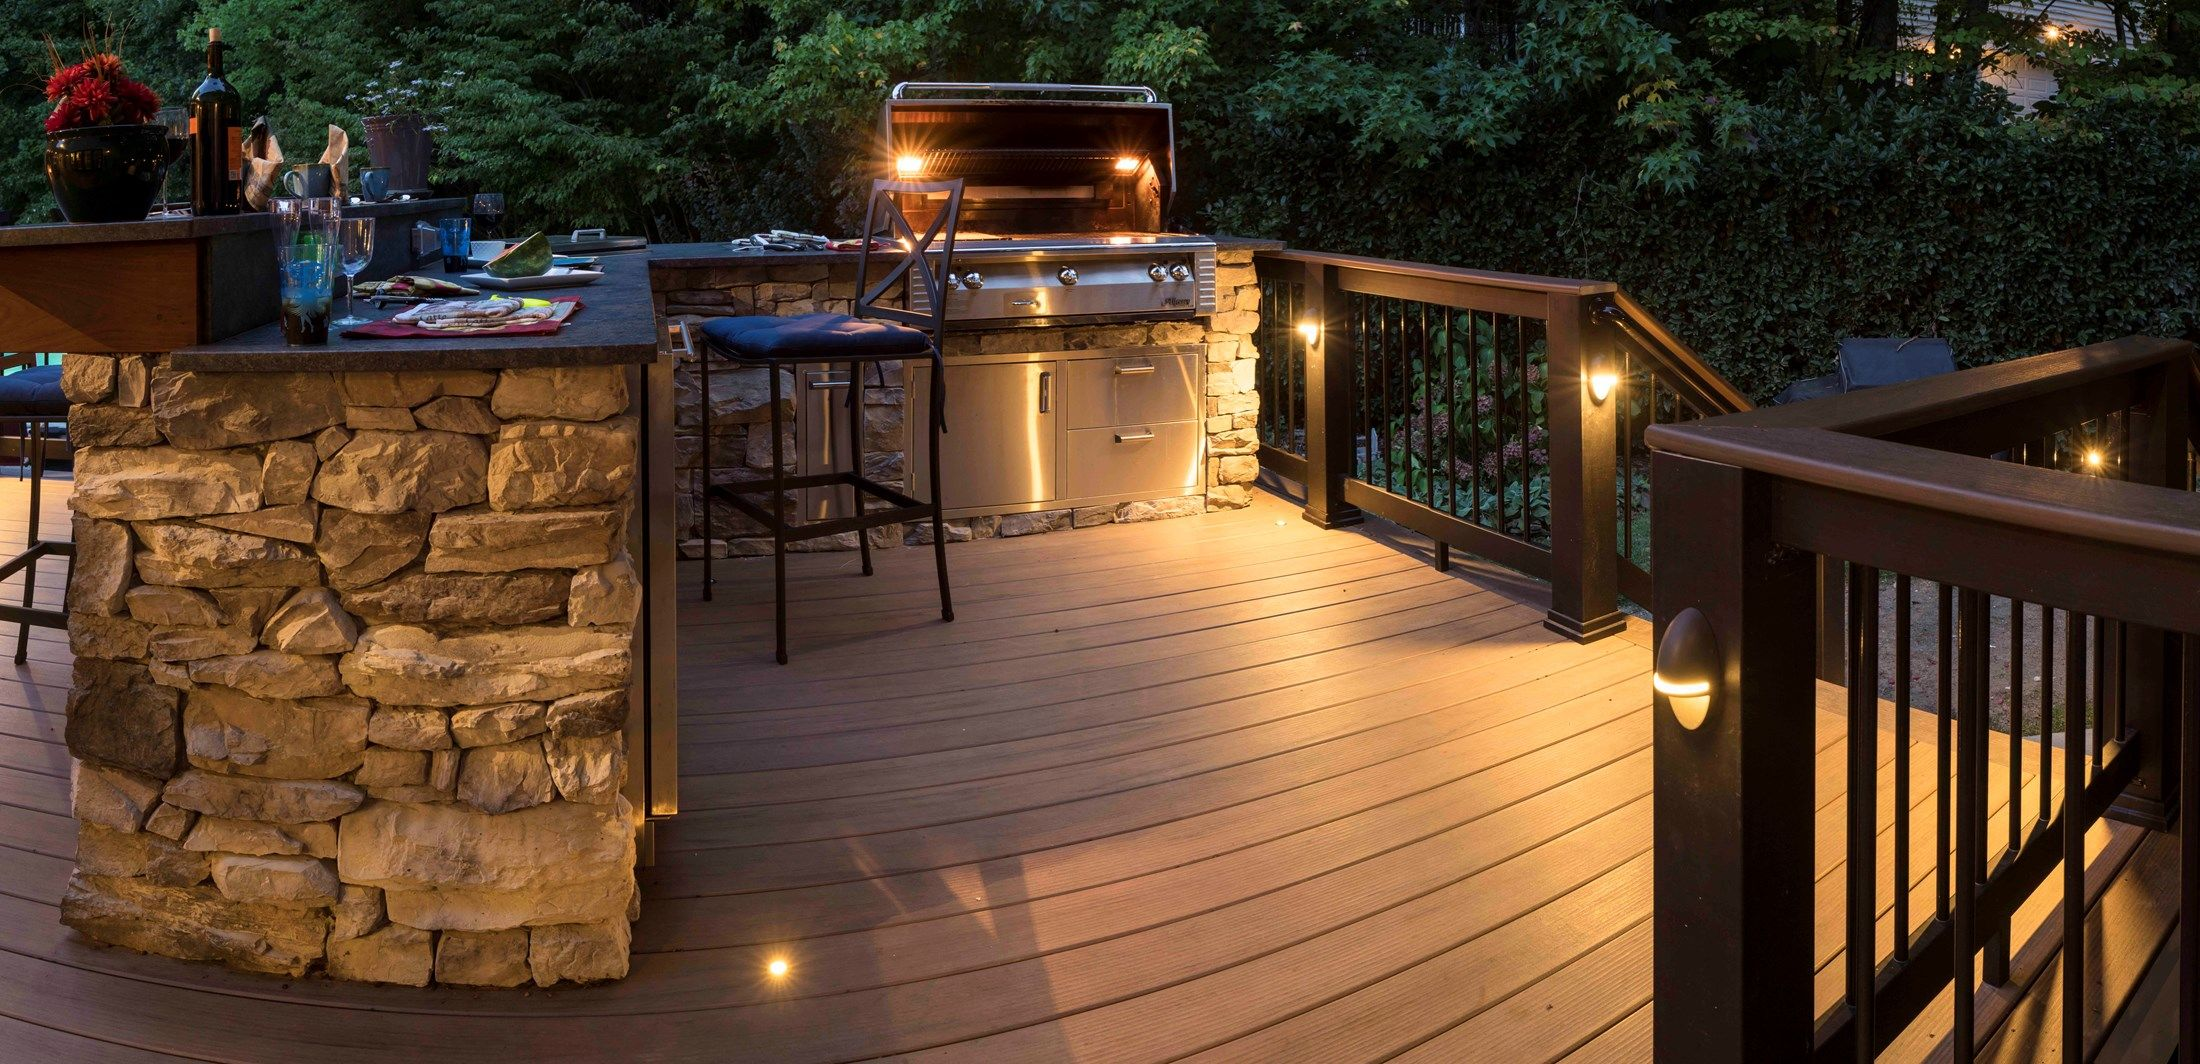 10 tips for designing a great deck - Deck ideas for home ...